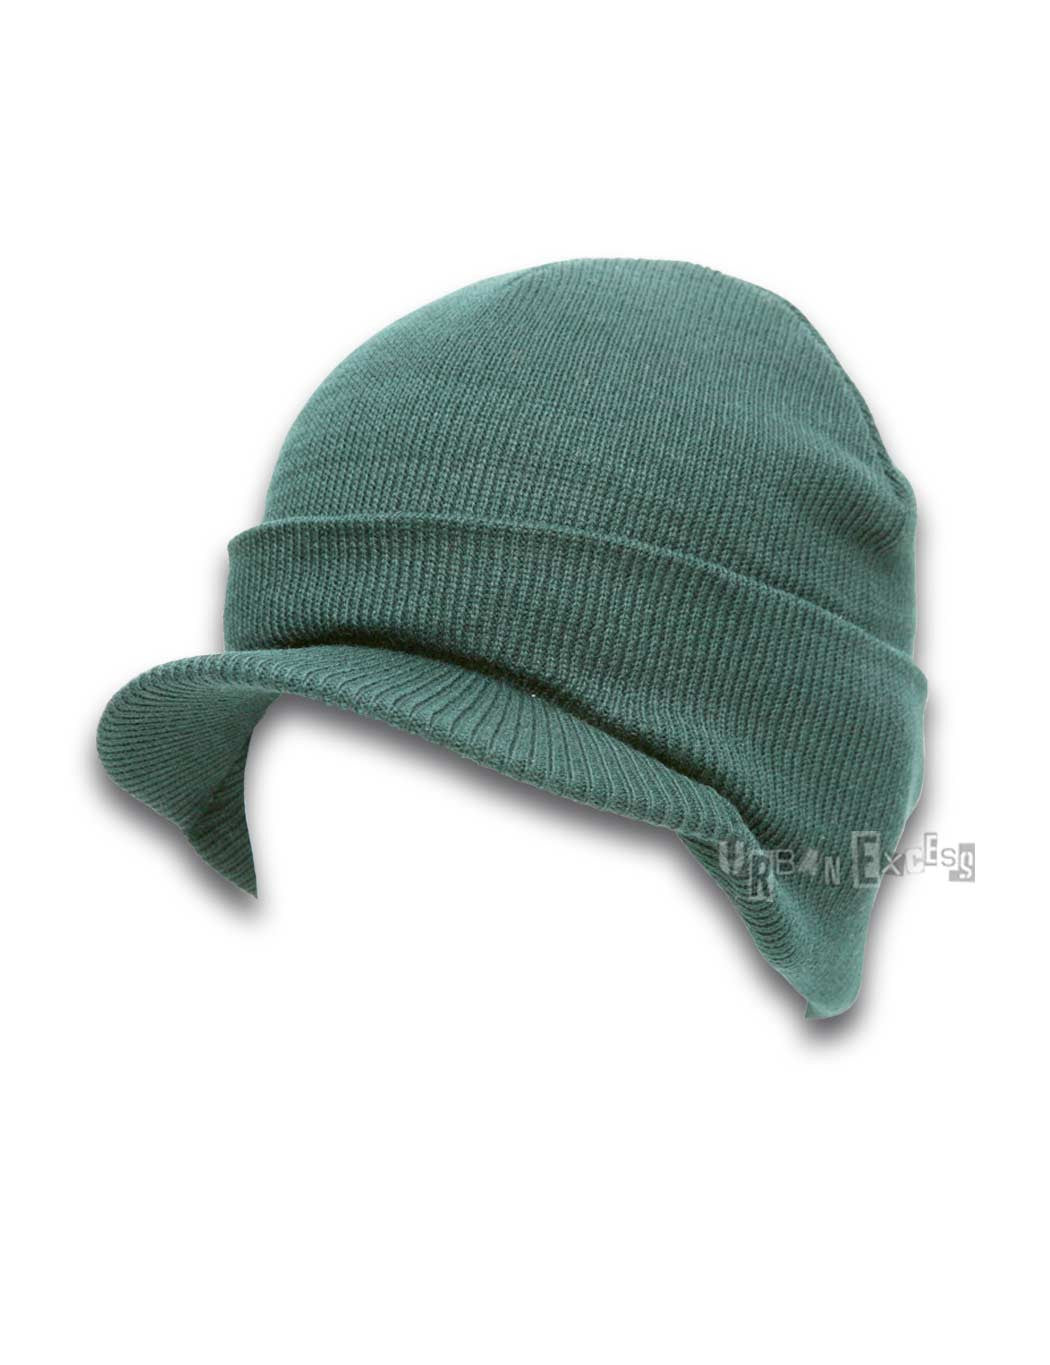 Cuffed Visor Beanie Hat - Dark Green